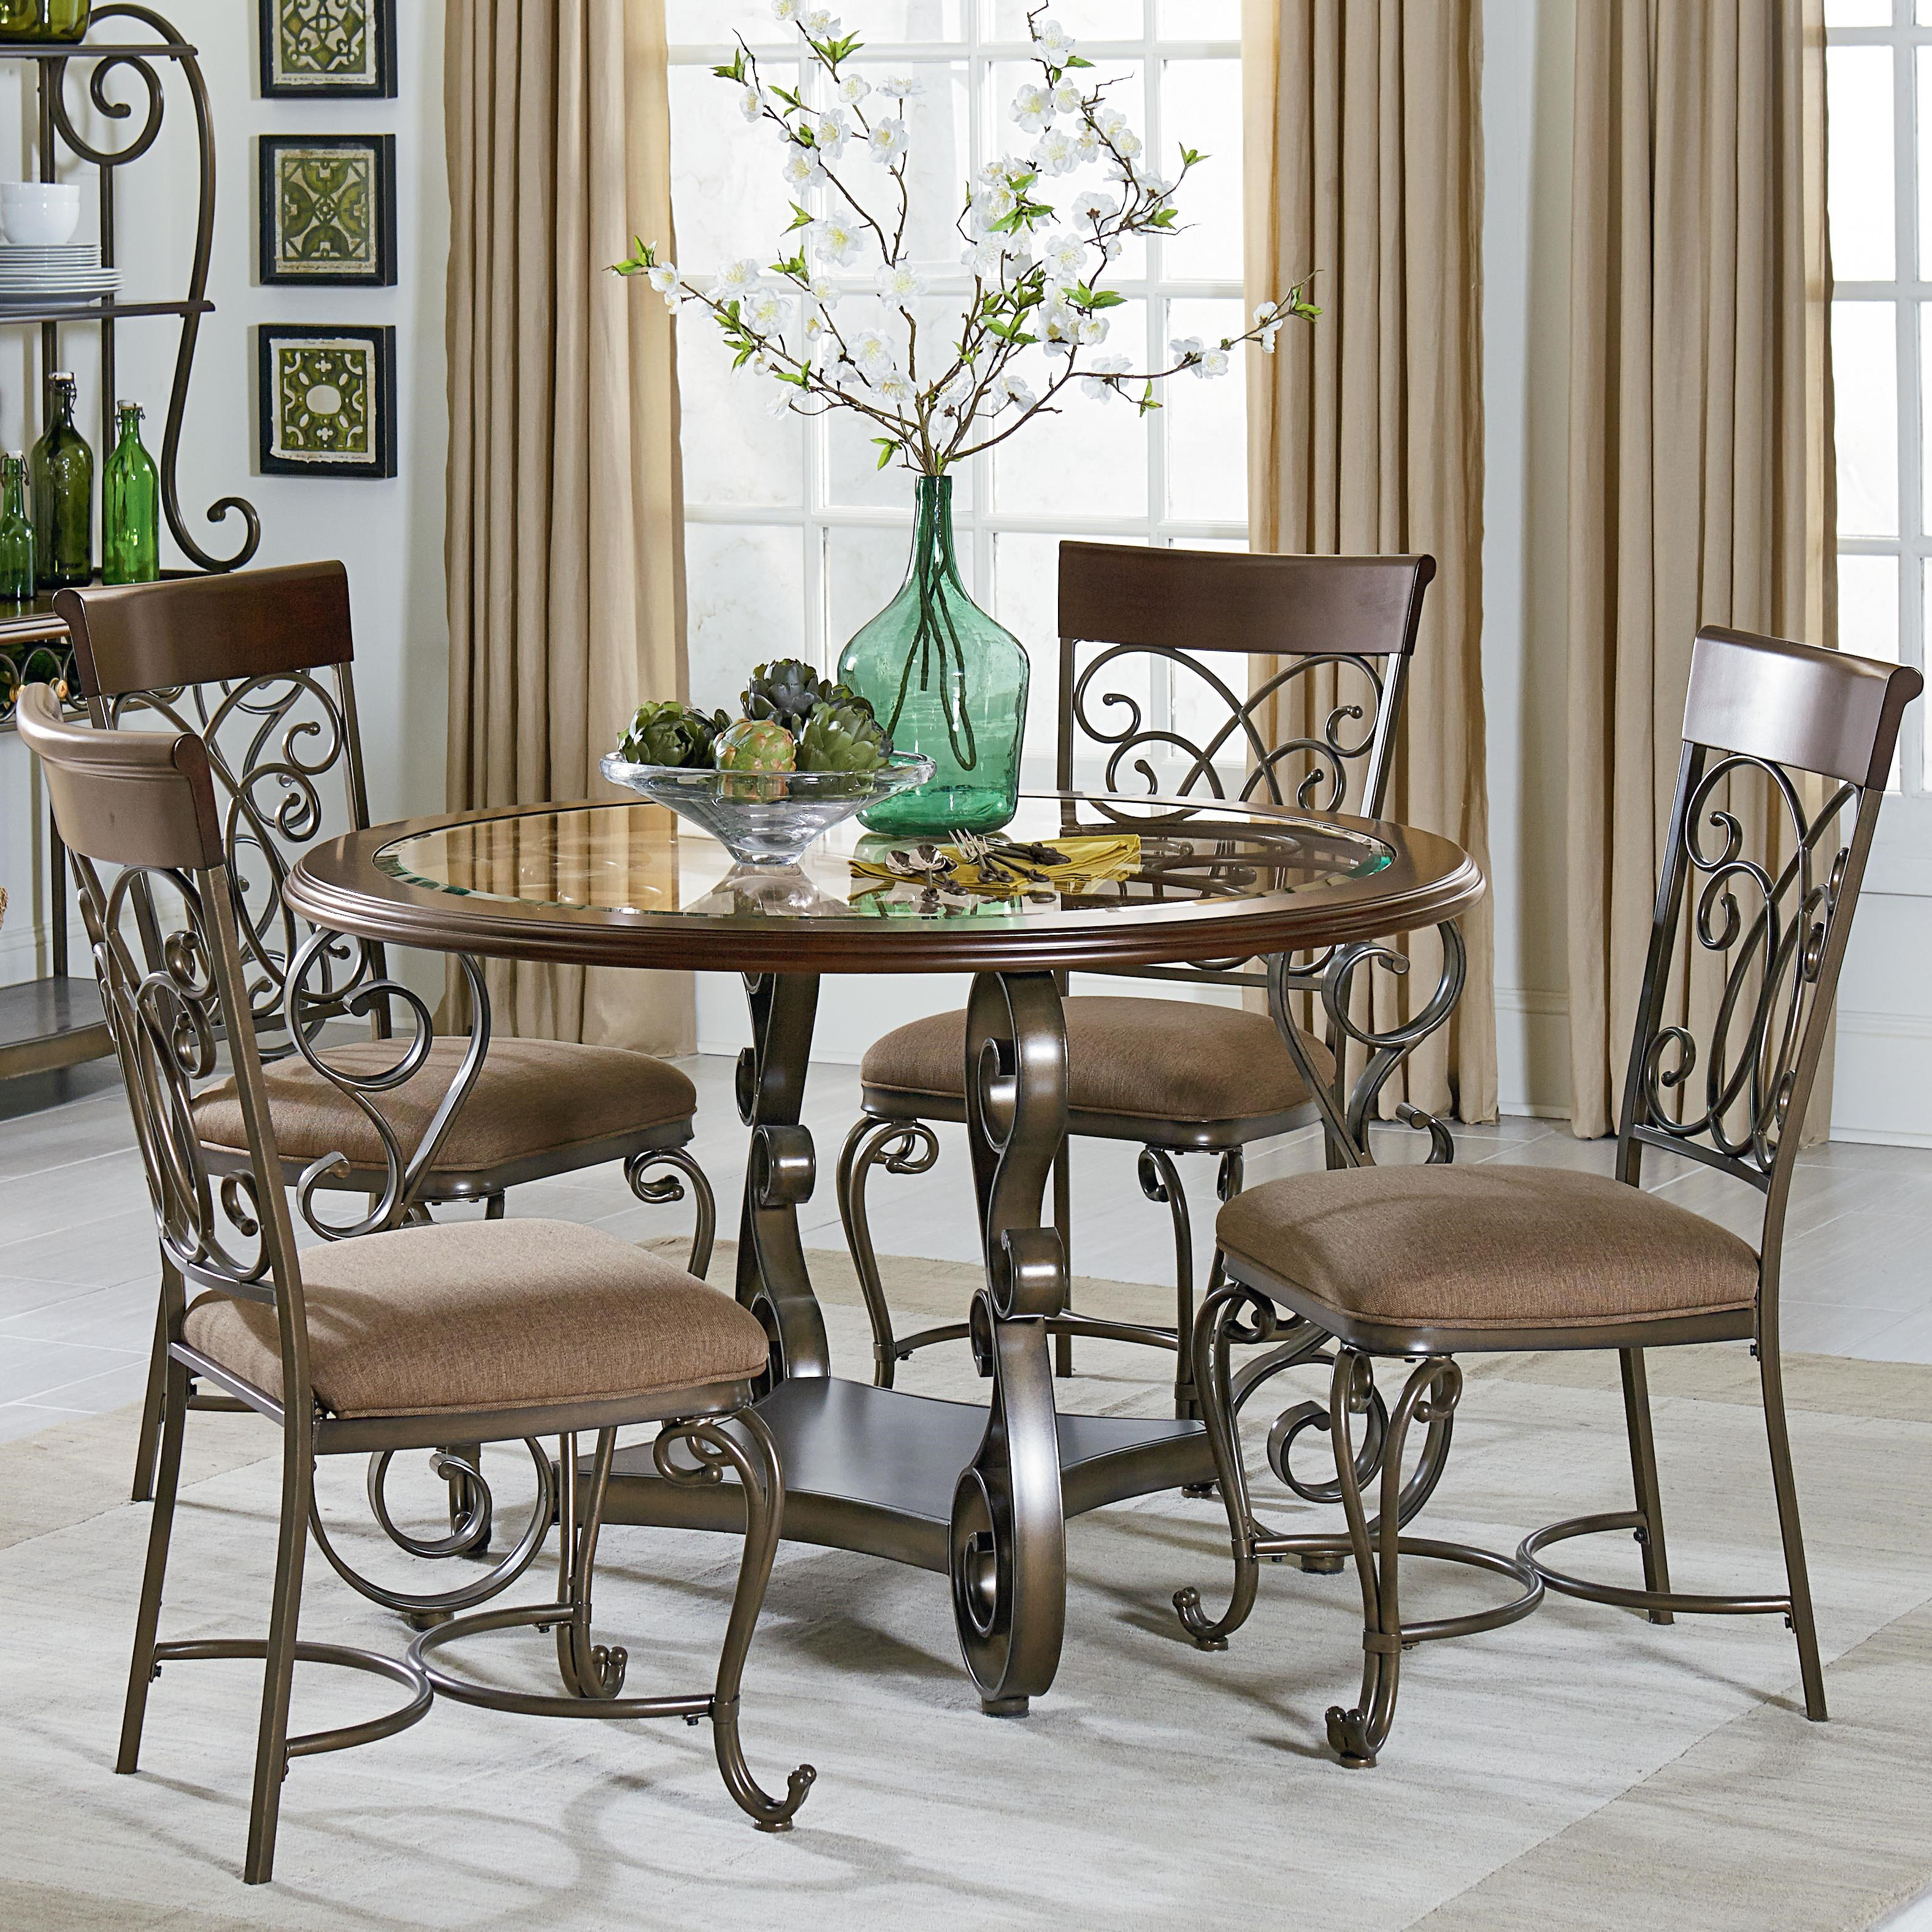 Standard Furniture Bombay Round Table And Chair Set With Metal Scroll Detail